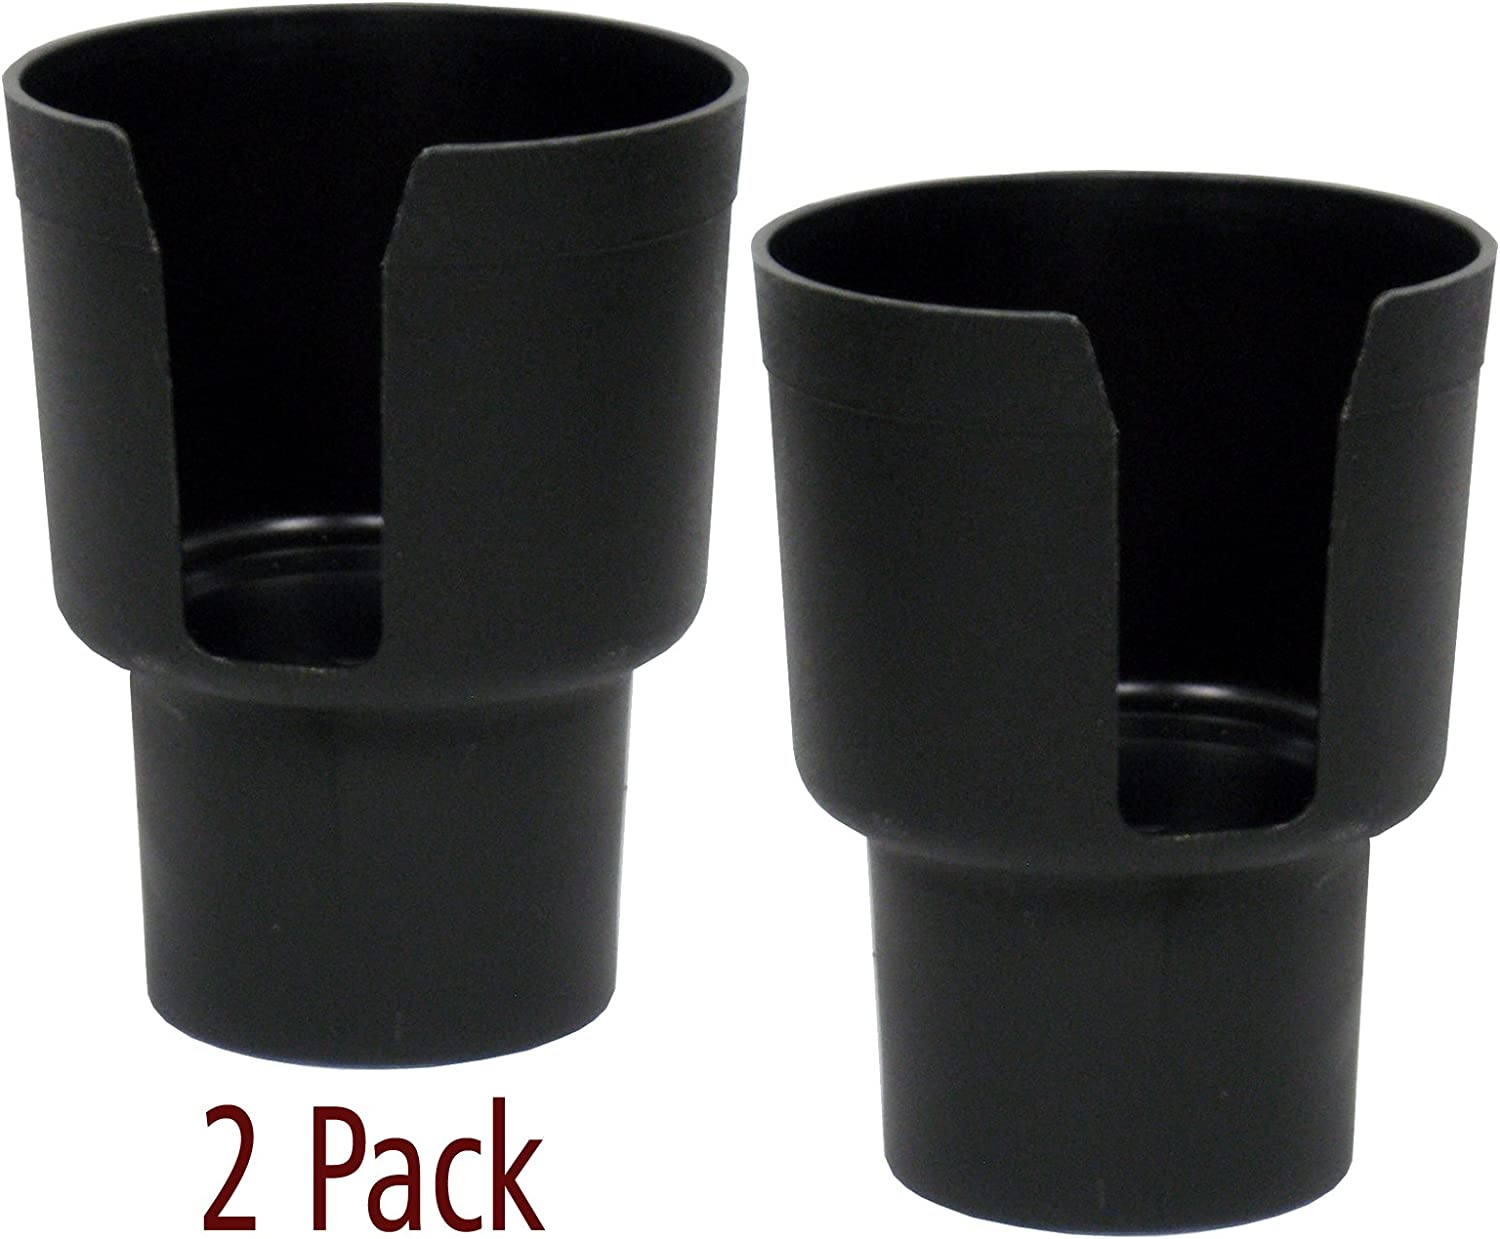 "Gadjit Cup Keeper Adapter (2 Pk) expands Narrow Car Cup Holders from 2.5-3"" up to 3.25"" in Diameter to Hold Mugs, Convenience Store Cups, Water + Soda Bottles up to 3.25"" Wide and 8-10"" Tall (Black)"